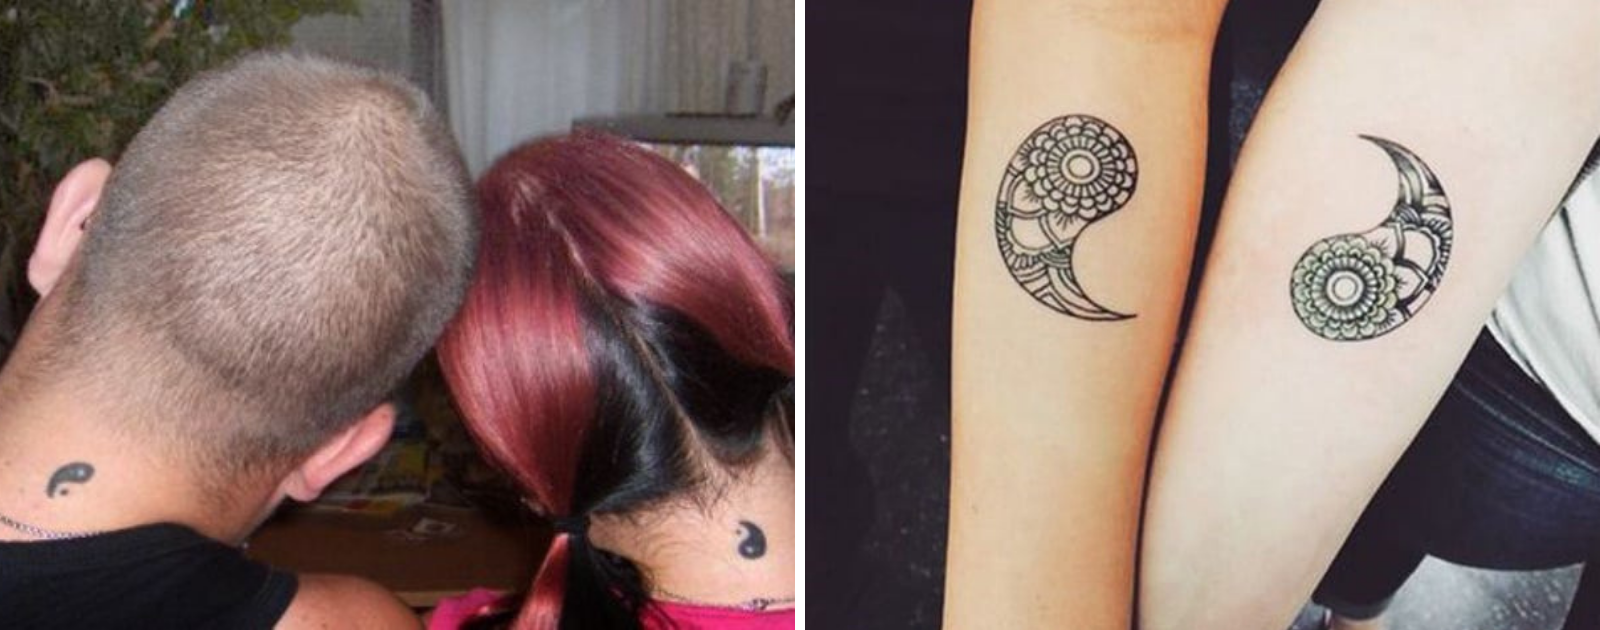 yin yang tattoo best friends